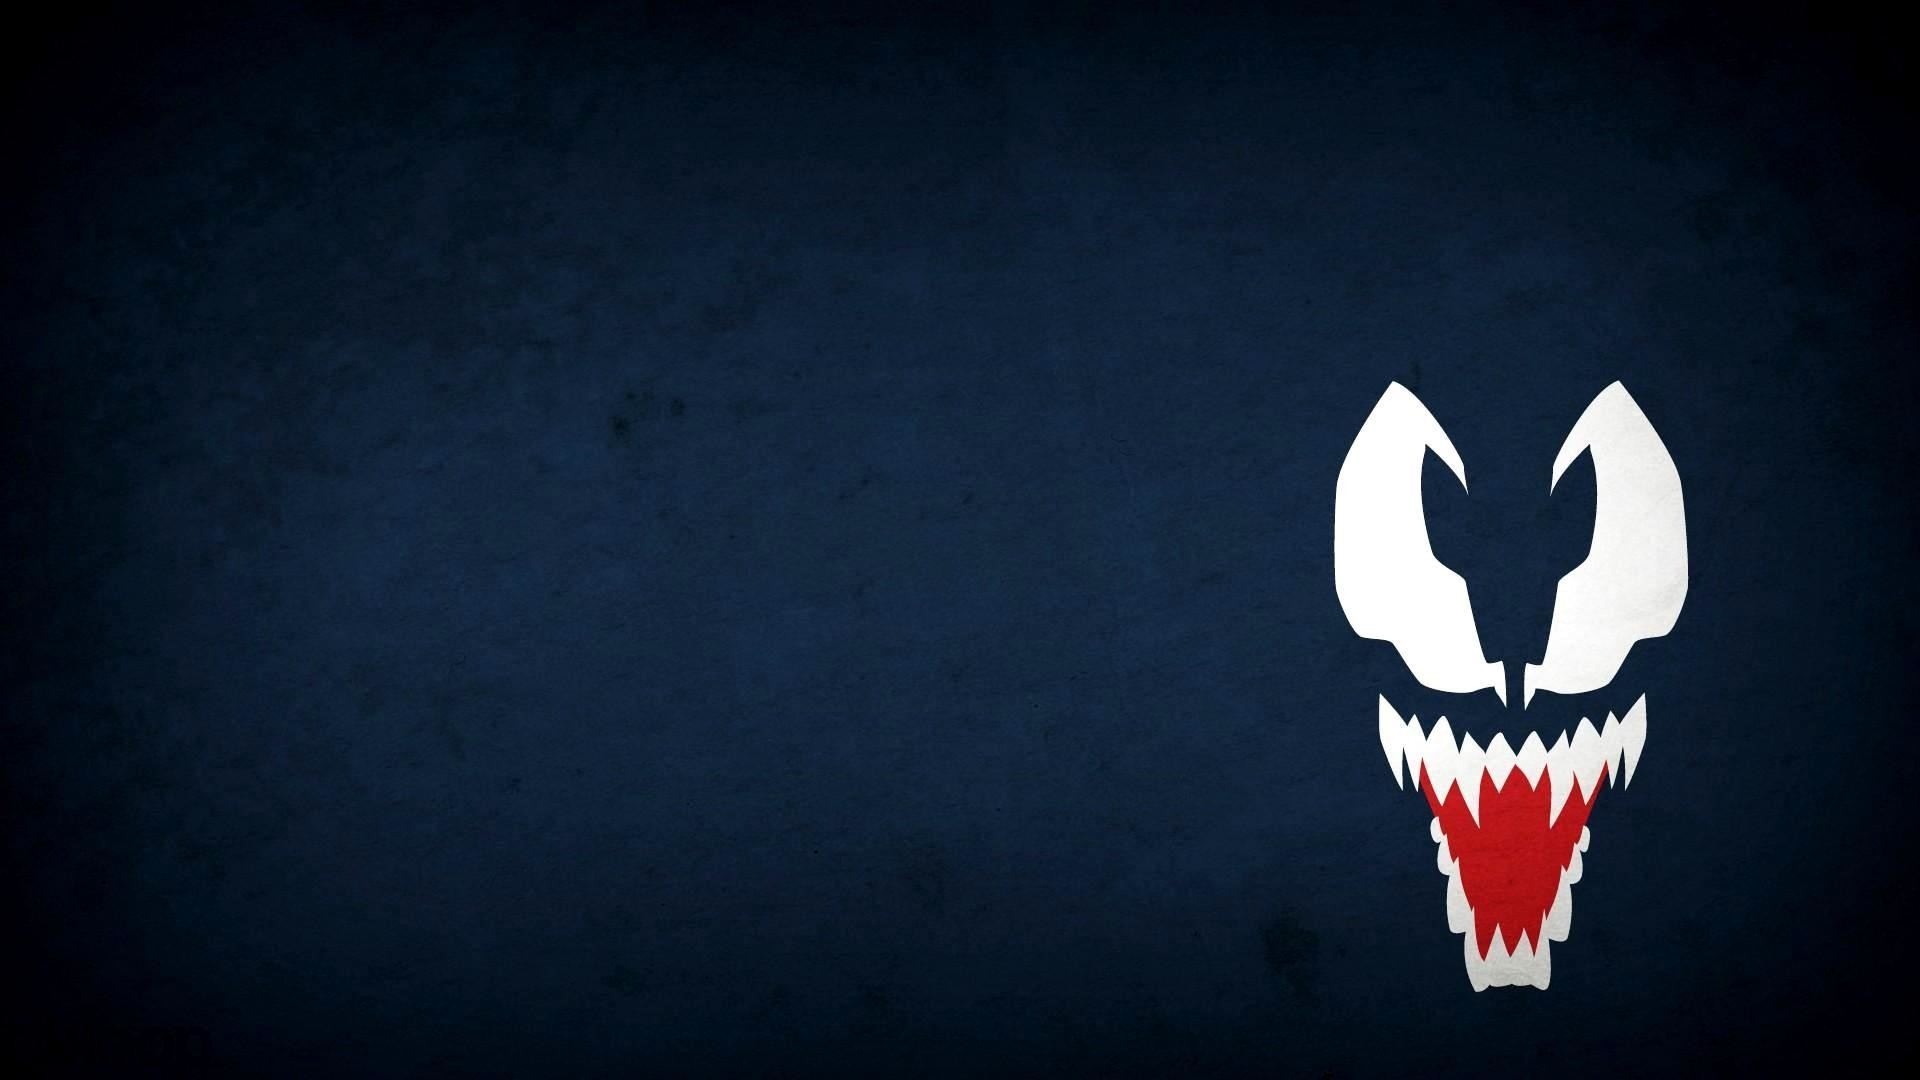 1920x1080 Venom Wallpaper 26093 Hd Wallpapers in Movies - Telusers.com